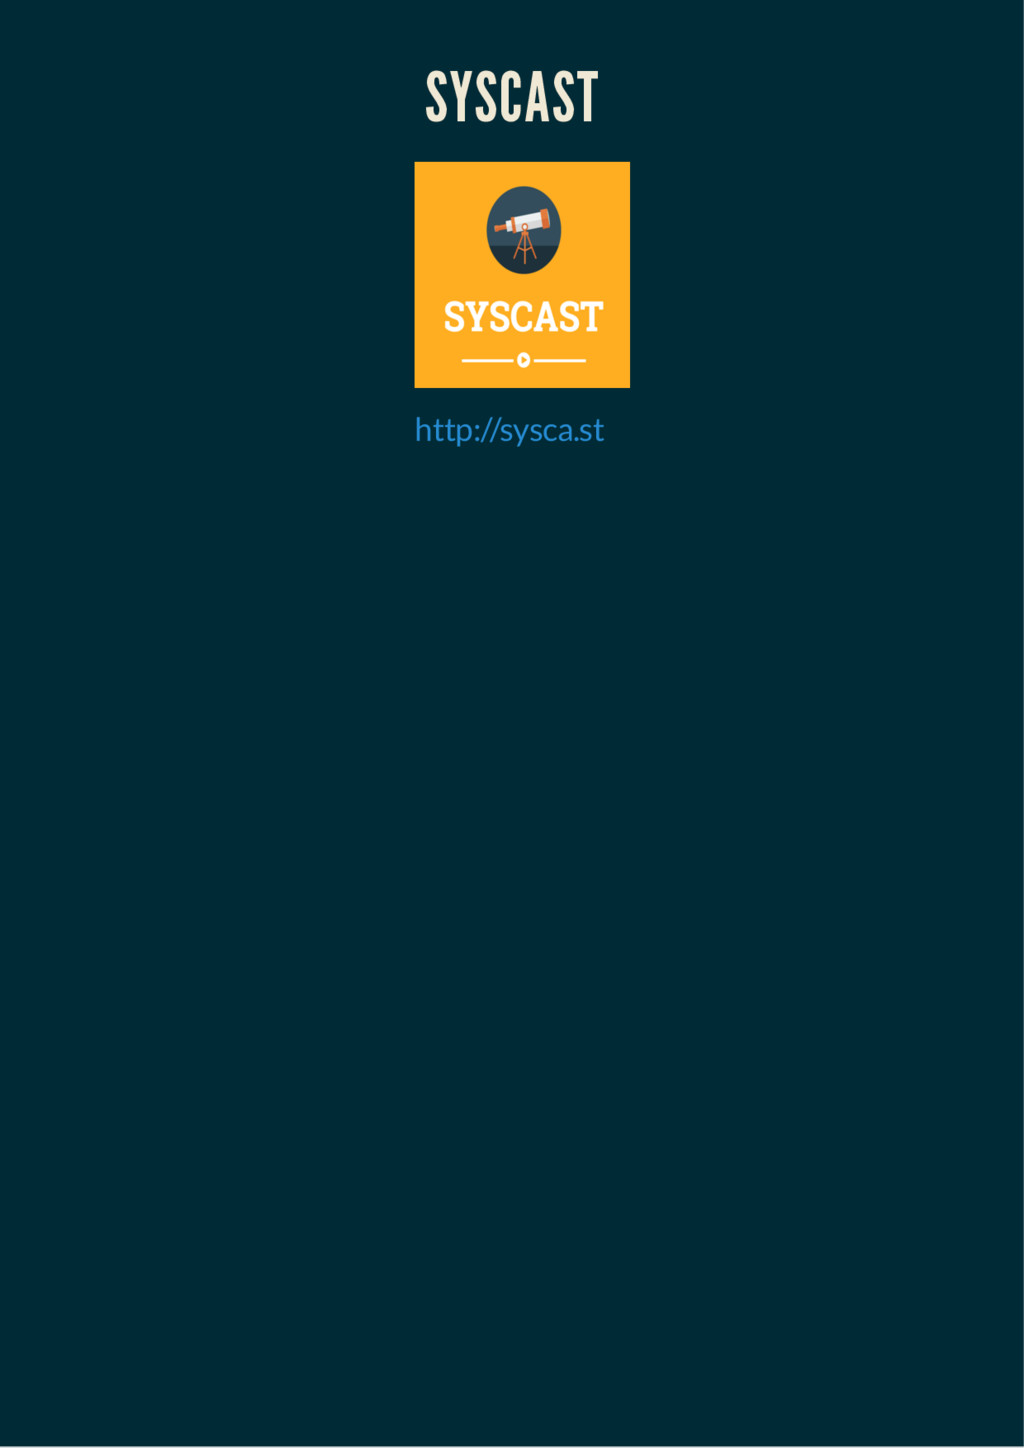 SYSCAST SYSCAST http://sysca.st